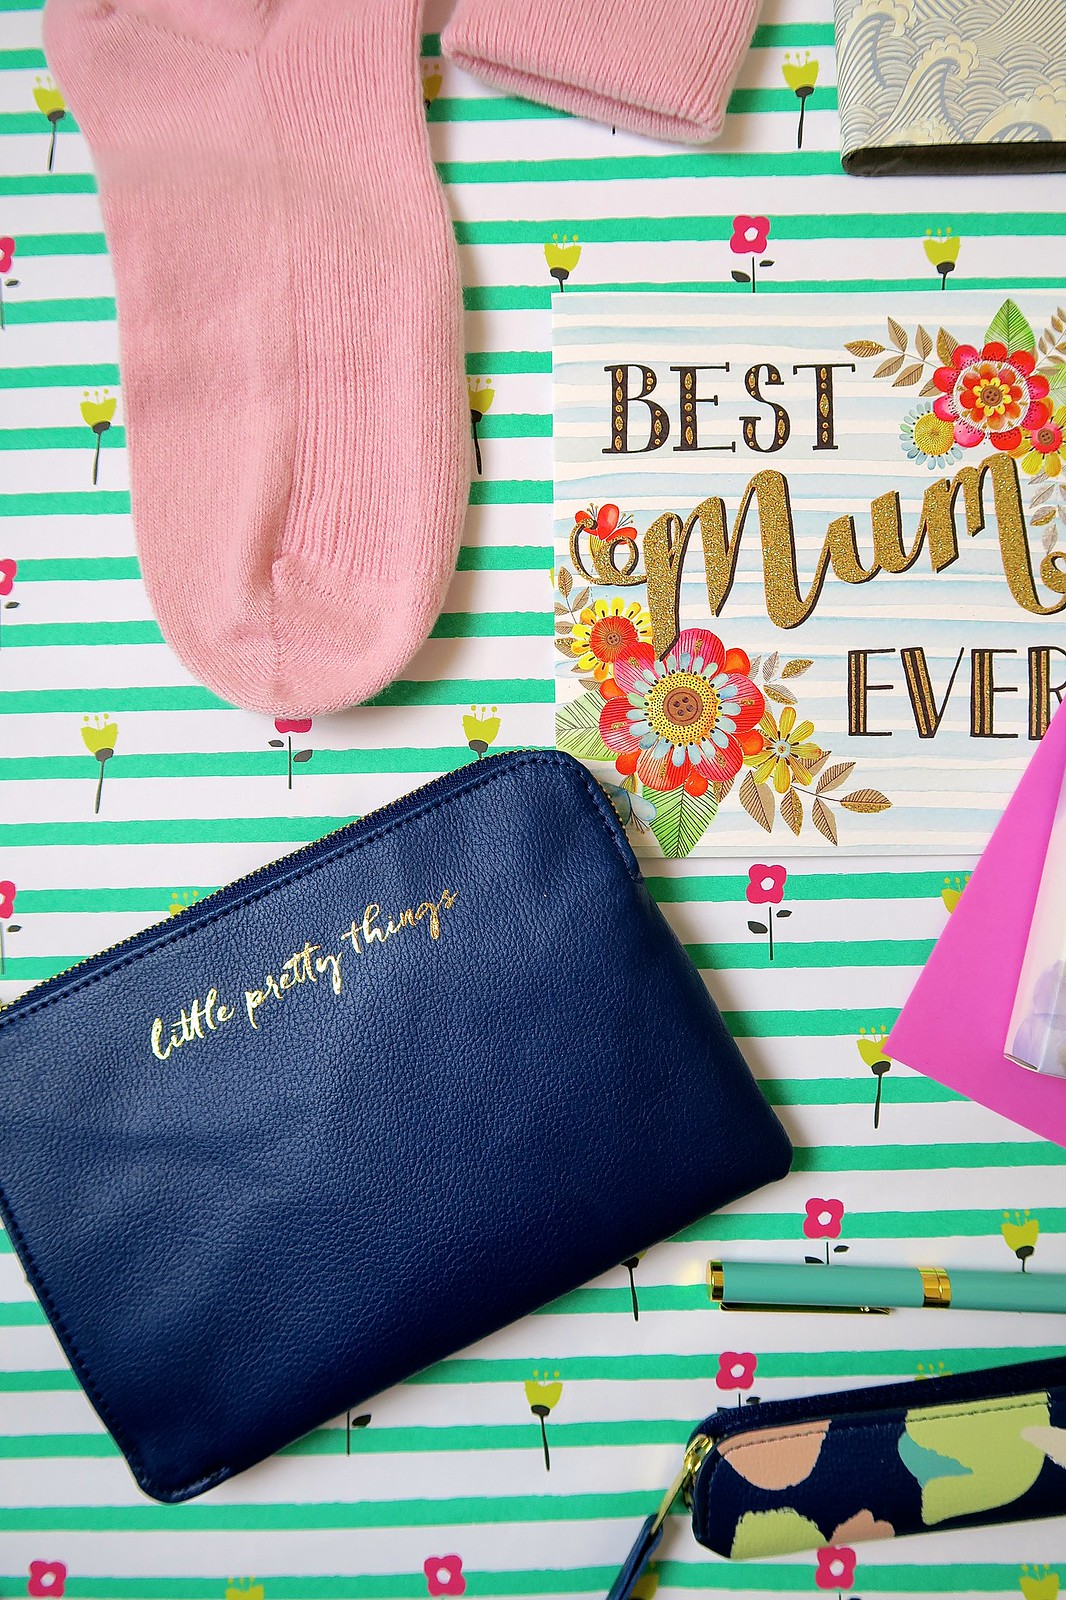 mother's day gift ideas beauty lifestyle